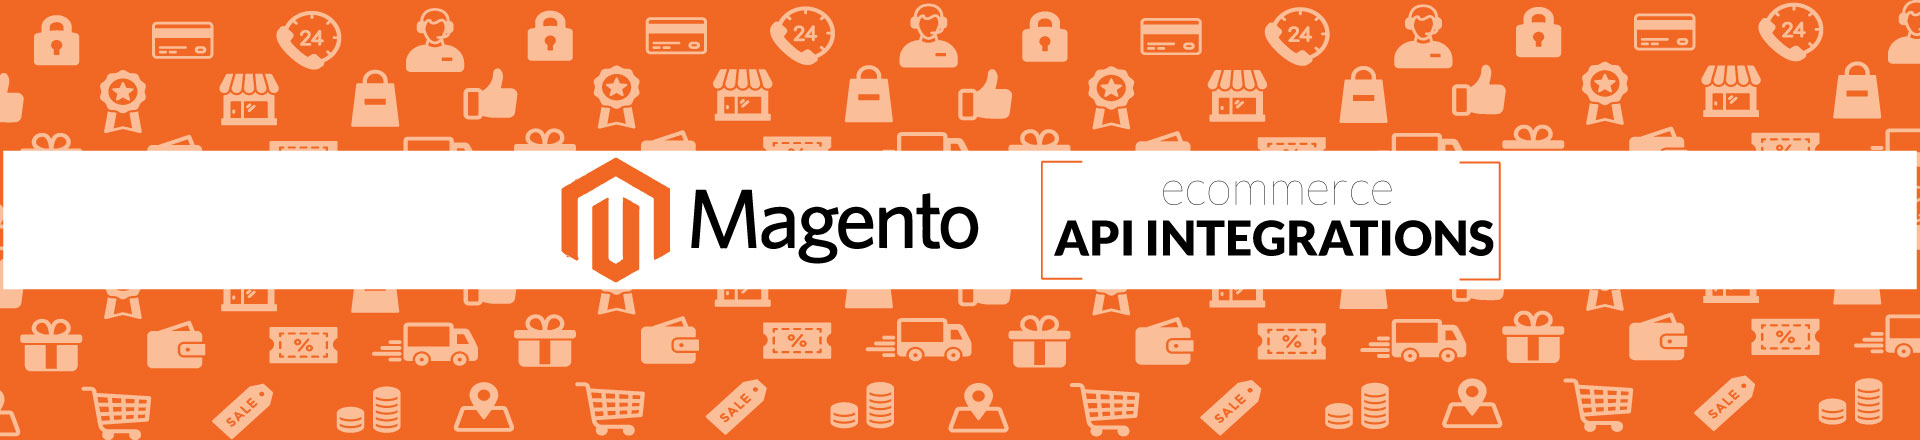 Magento API: Ecommerce at your fingertips